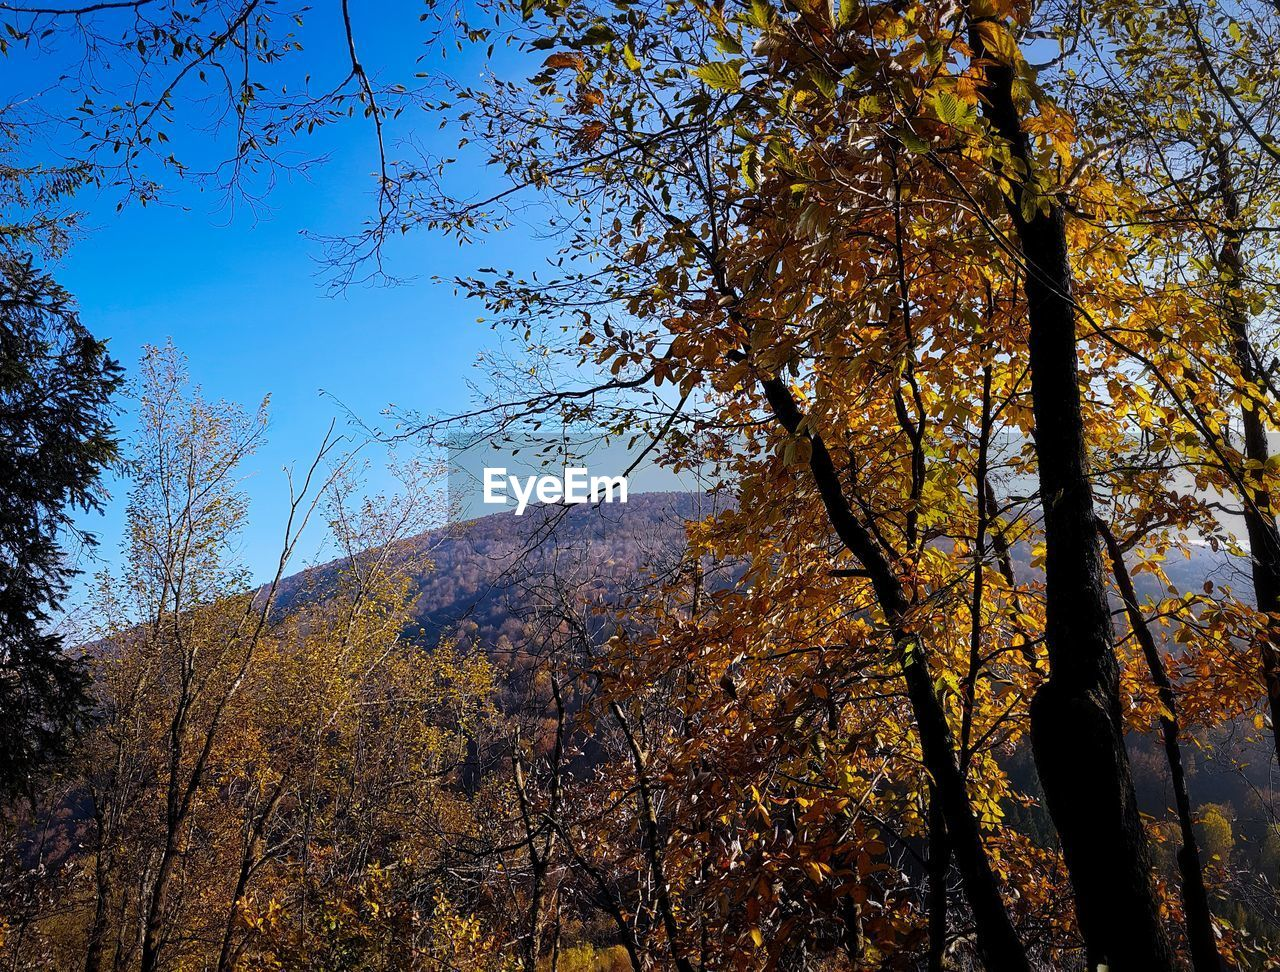 tree, autumn, beauty in nature, nature, branch, change, tranquility, growth, leaf, tranquil scene, day, scenics, no people, outdoors, low angle view, sky, forest, mountain